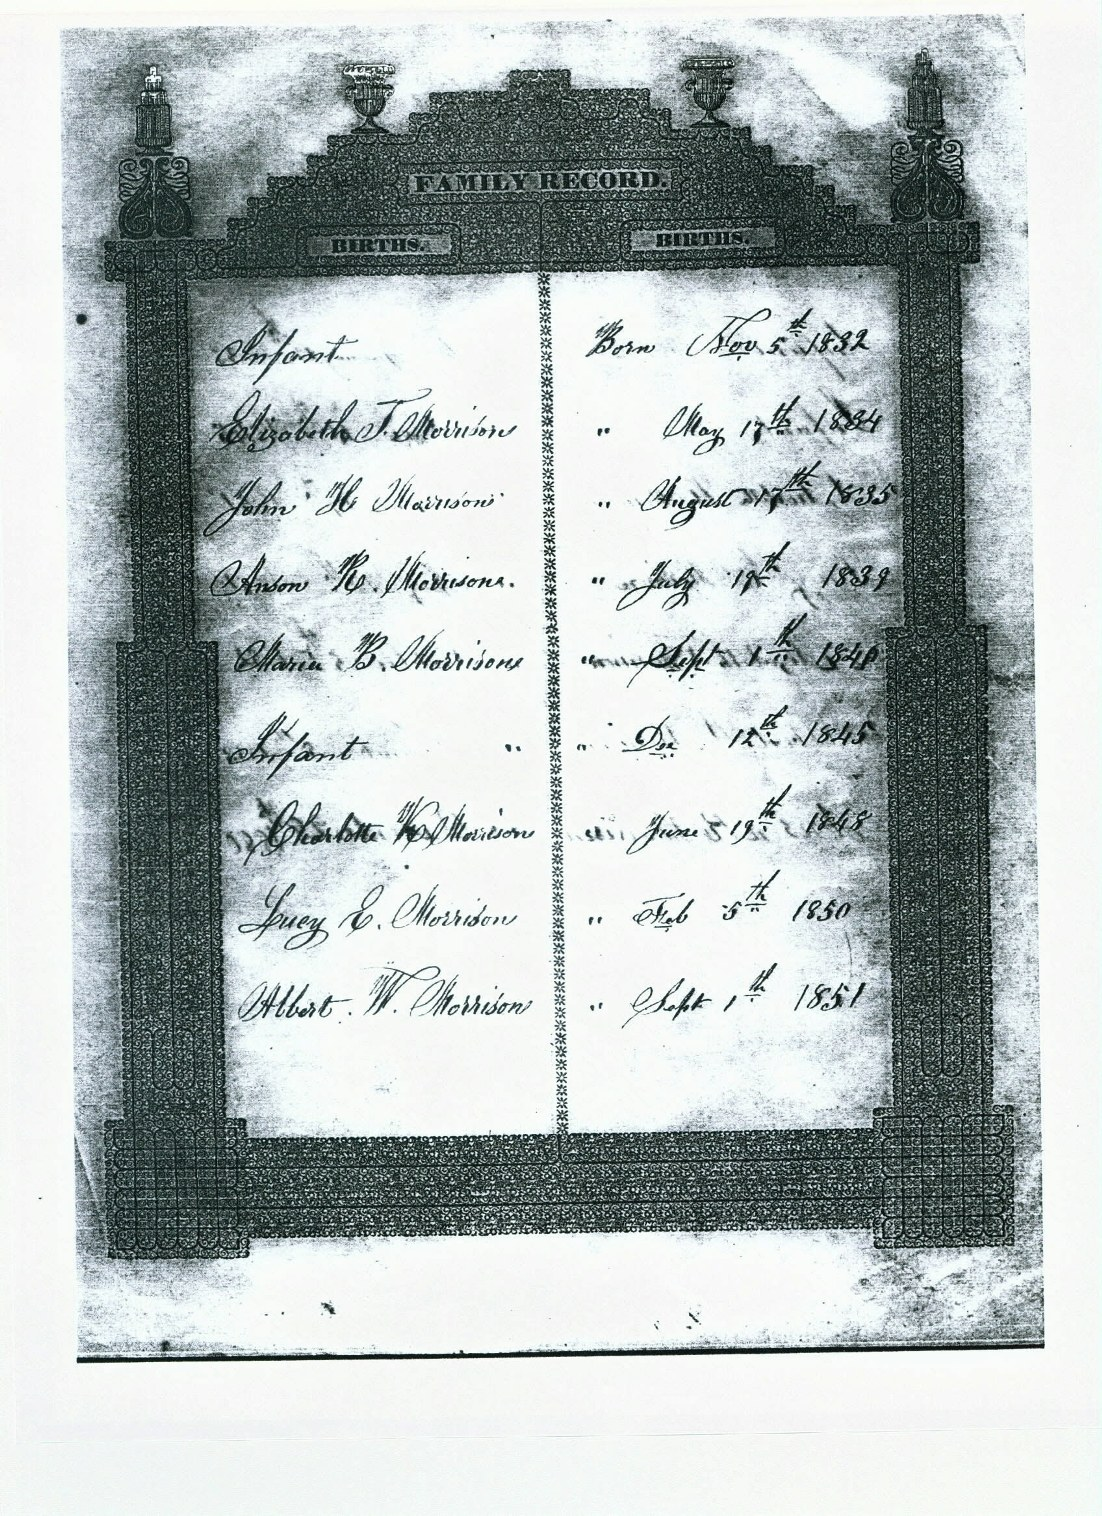 Vital records birth records found in the book boston marriagesbirths and deaths 1700 1809 1betcityfo Image collections